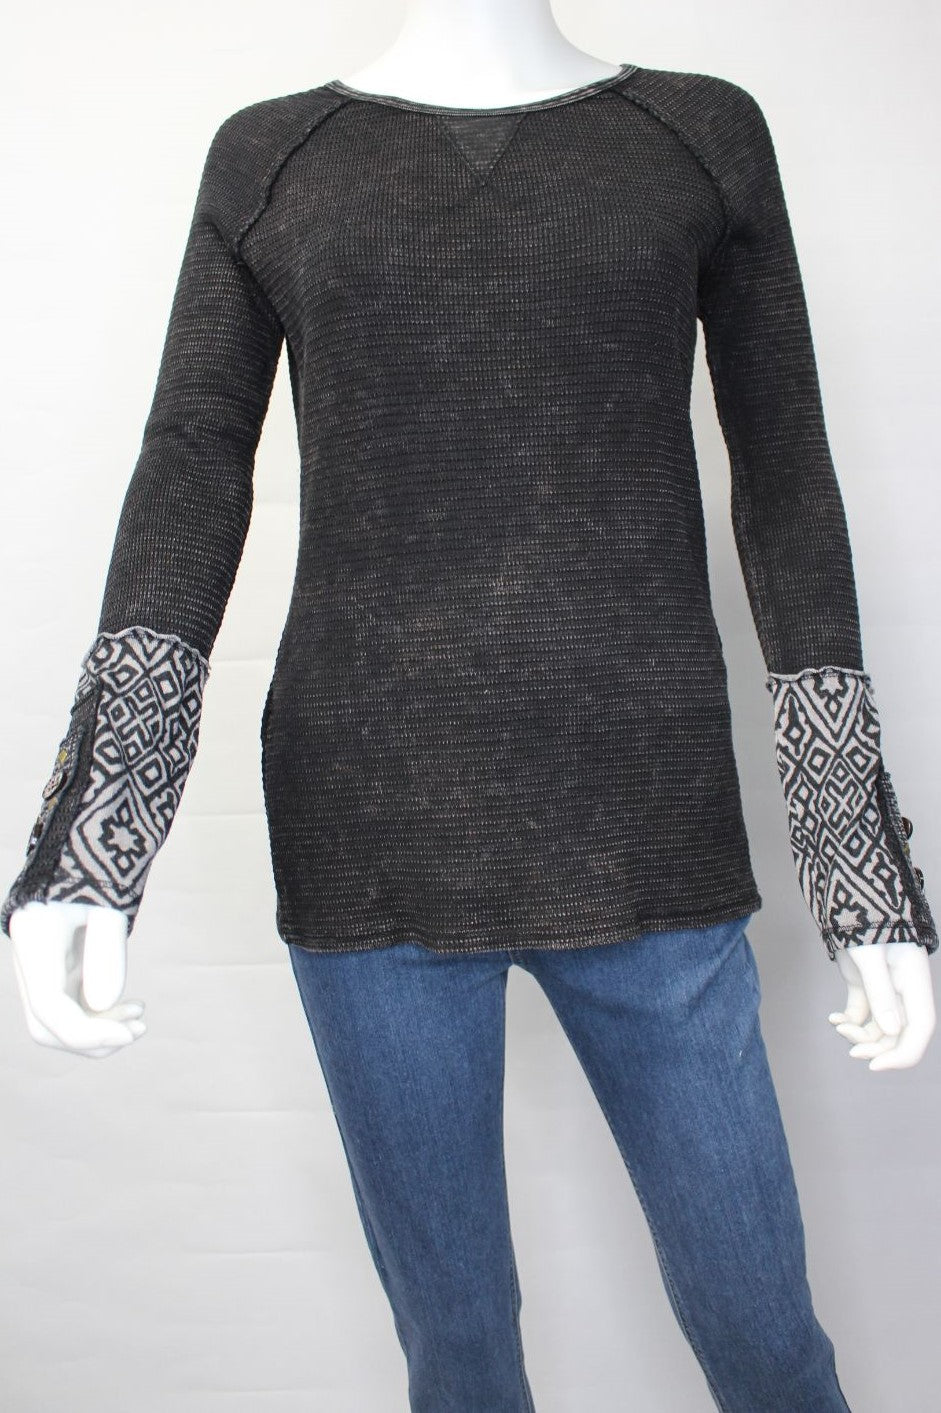 Women's Long Sleeve Crew Neck Top with Cuff Button Detail